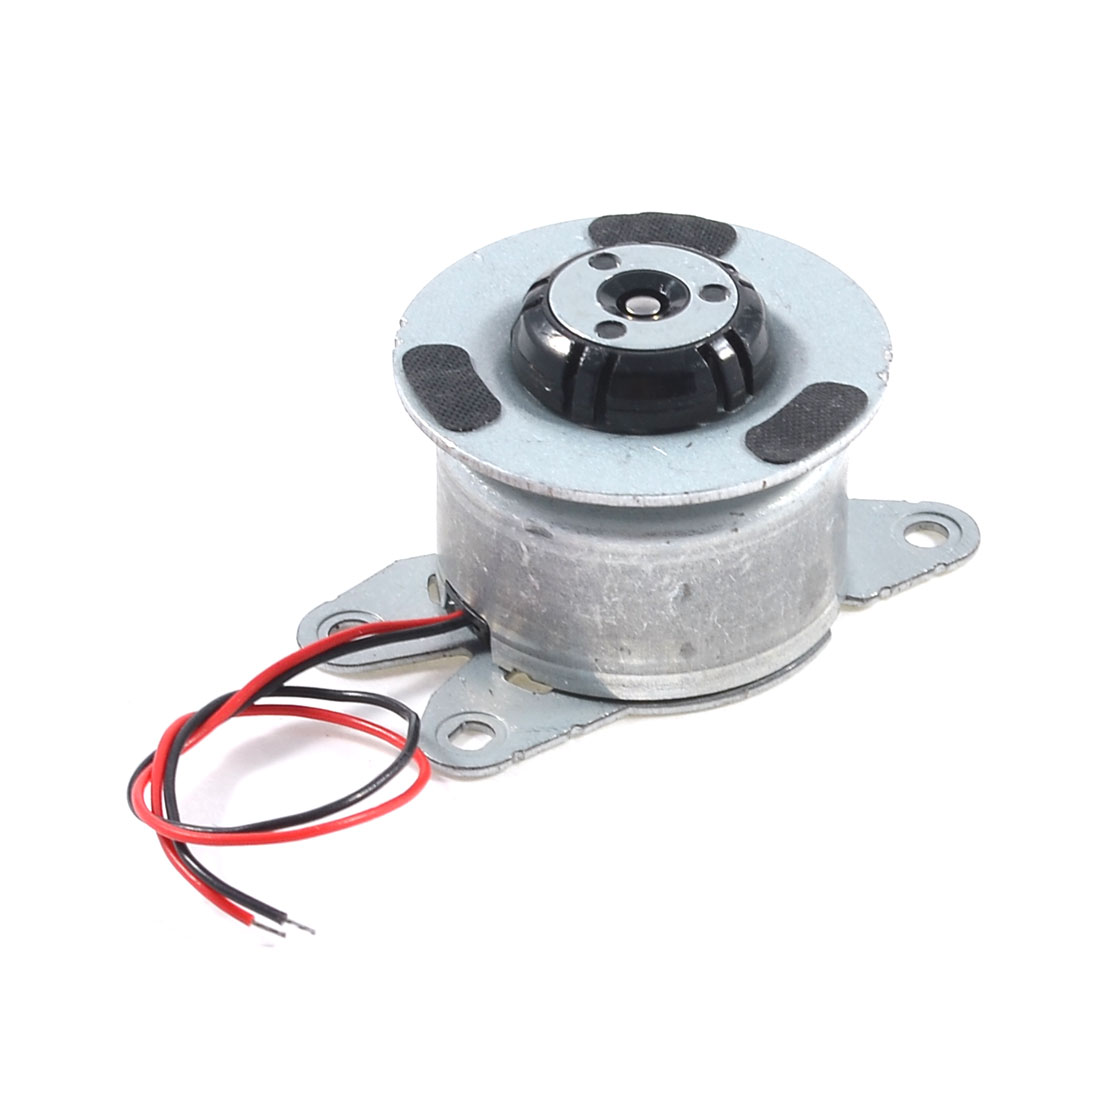 DC 3V 3000RPM 0.01A Disk Drive Micro Spindle Motor for DVD Player